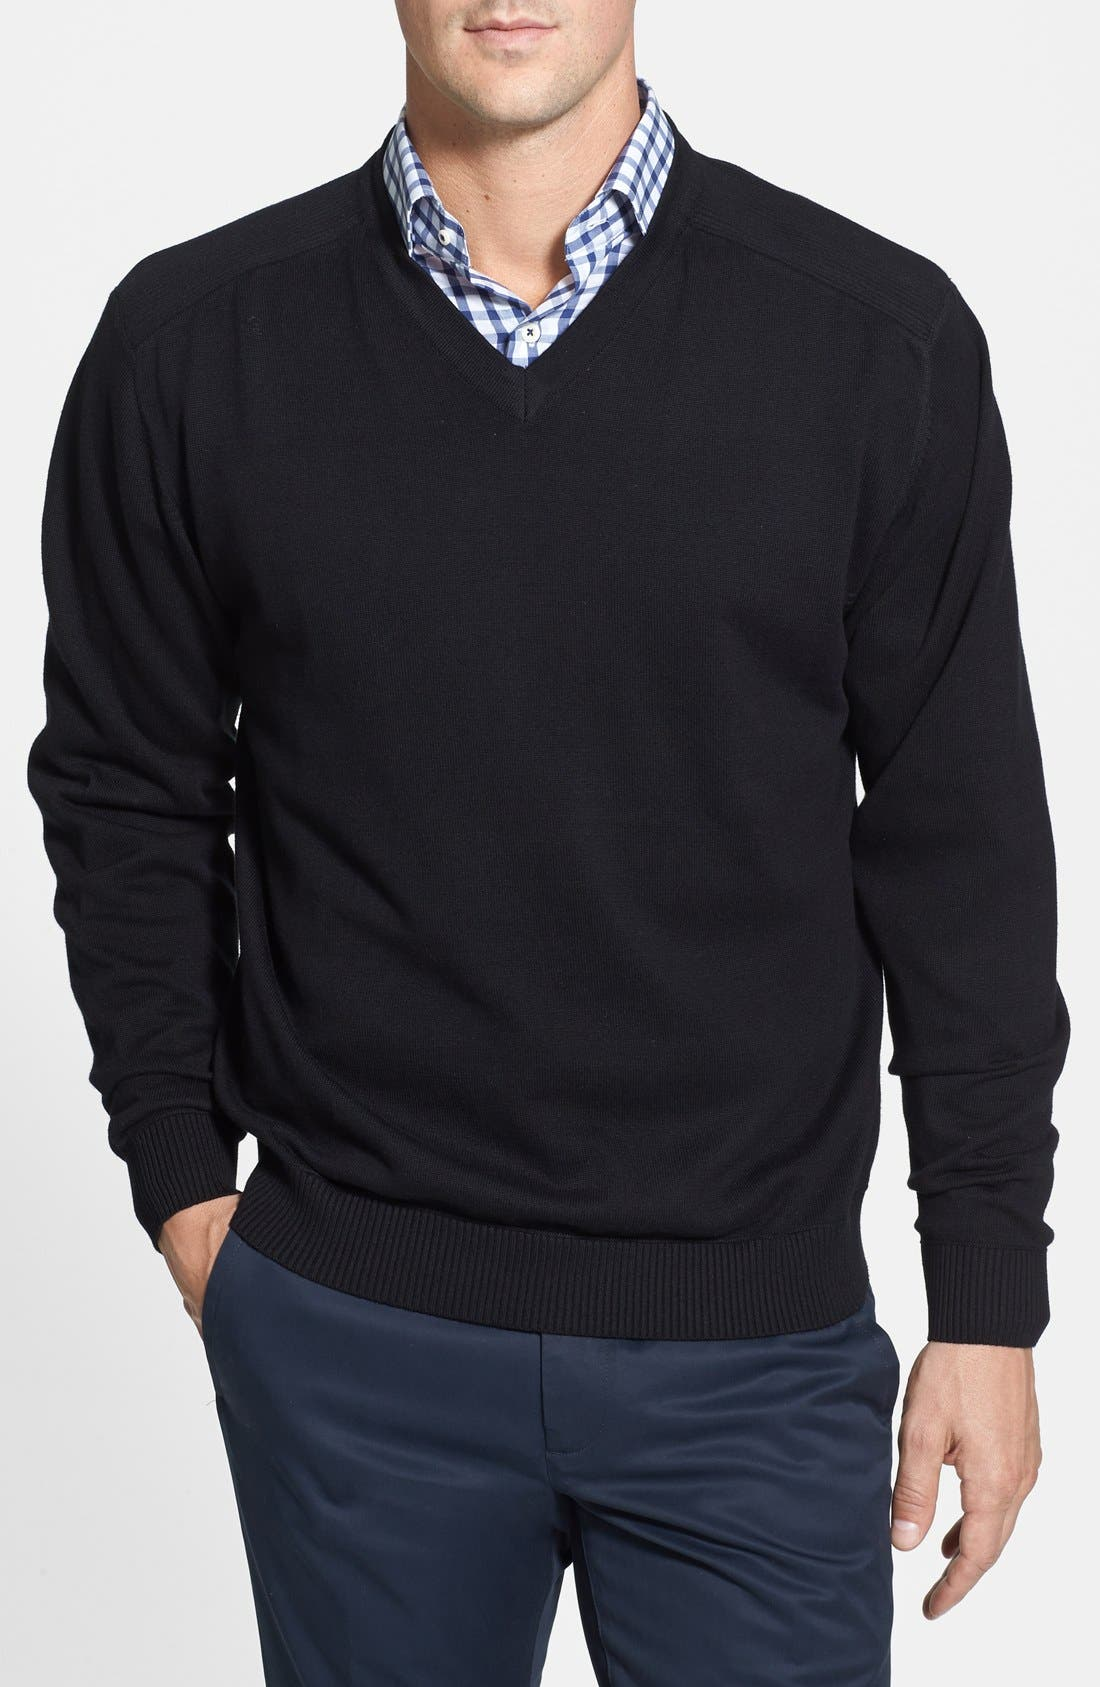 Broadview V-Neck Sweater,                             Main thumbnail 1, color,                             001